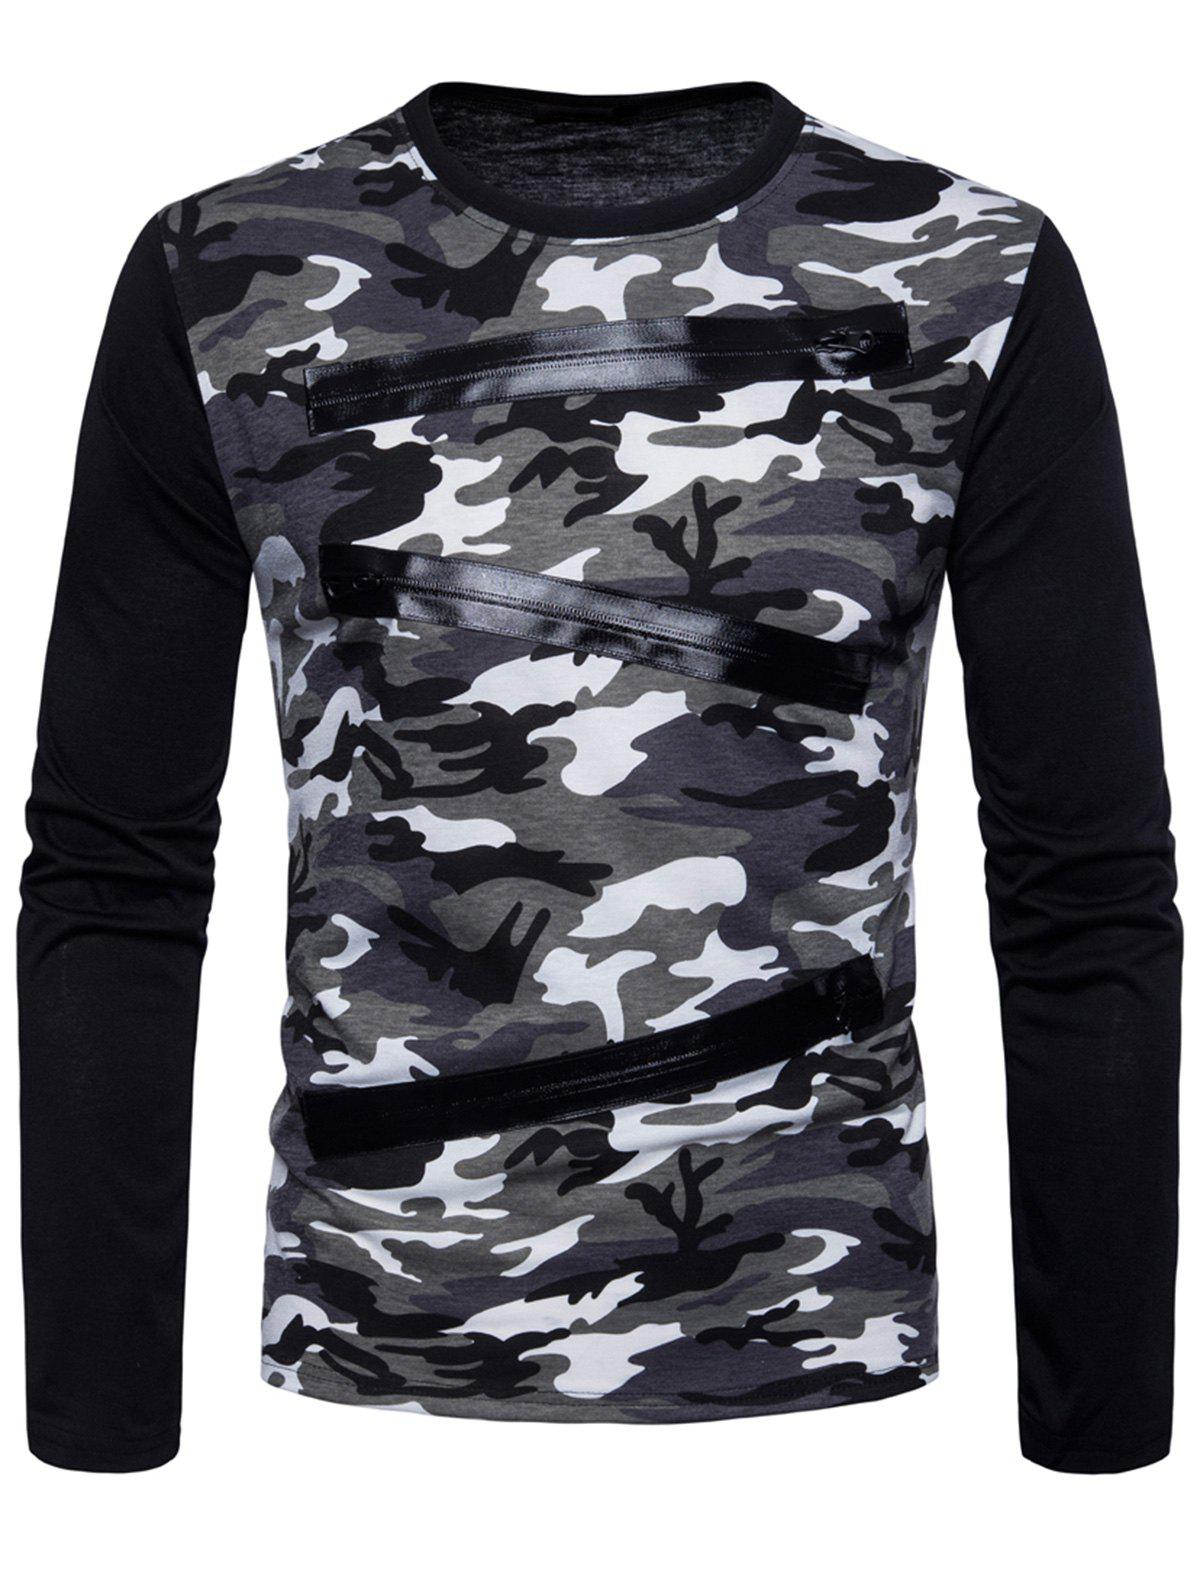 Store Long Sleeve Camo Pattern T-shirt